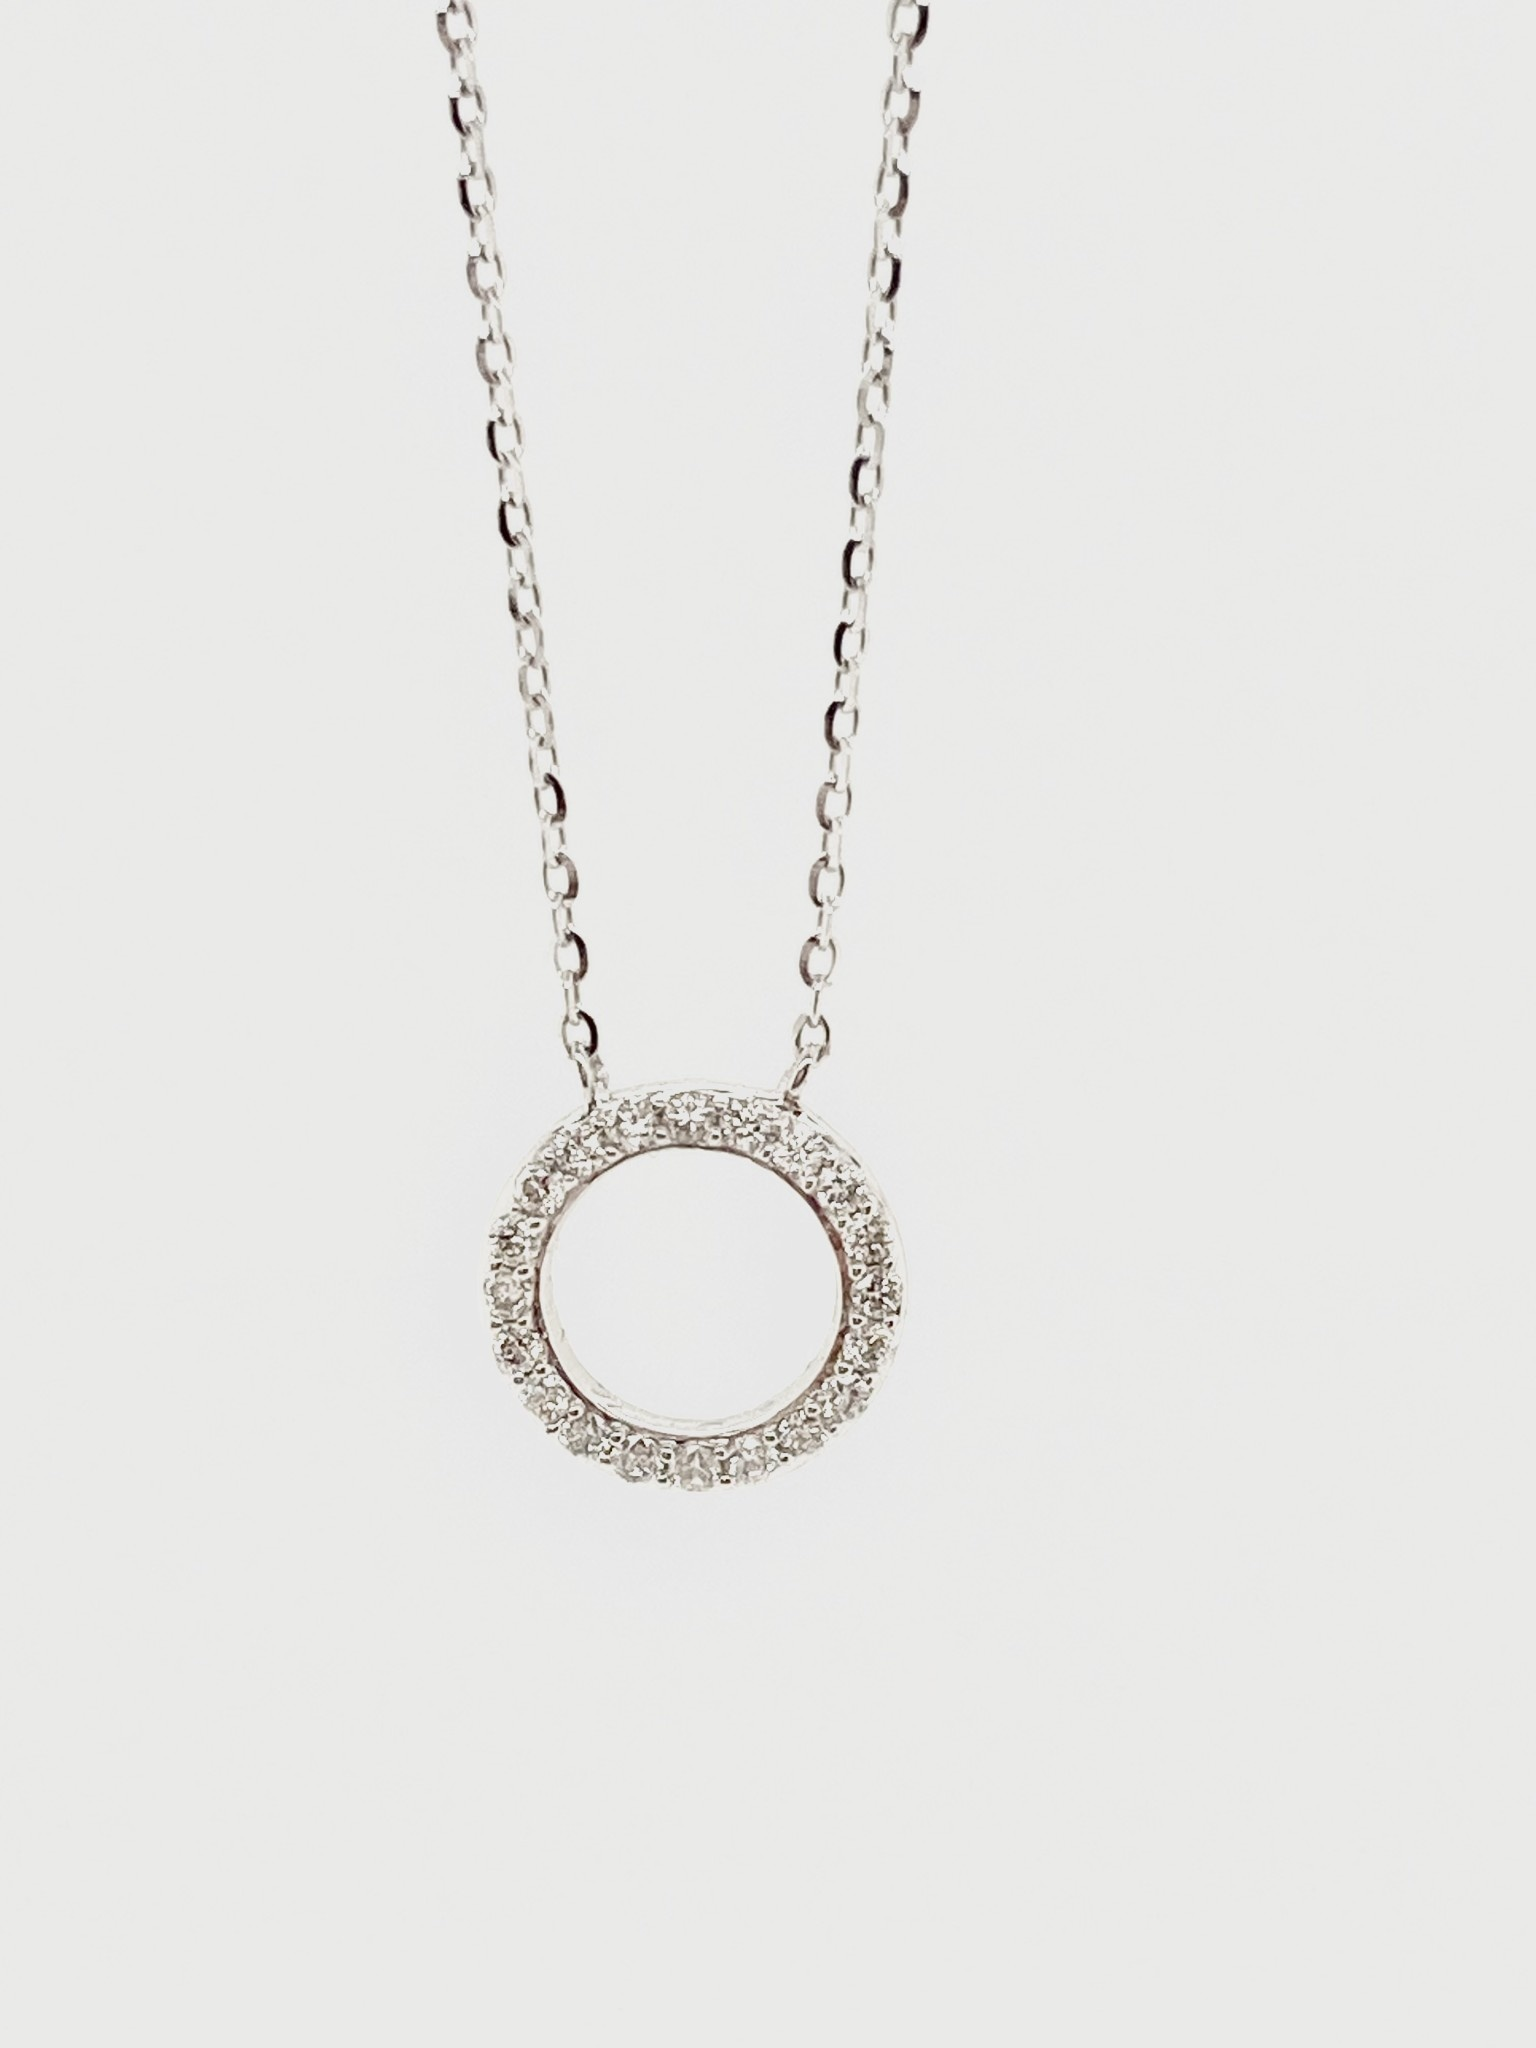 14K White Gold 0.14ct Diamonds Circle Necklace